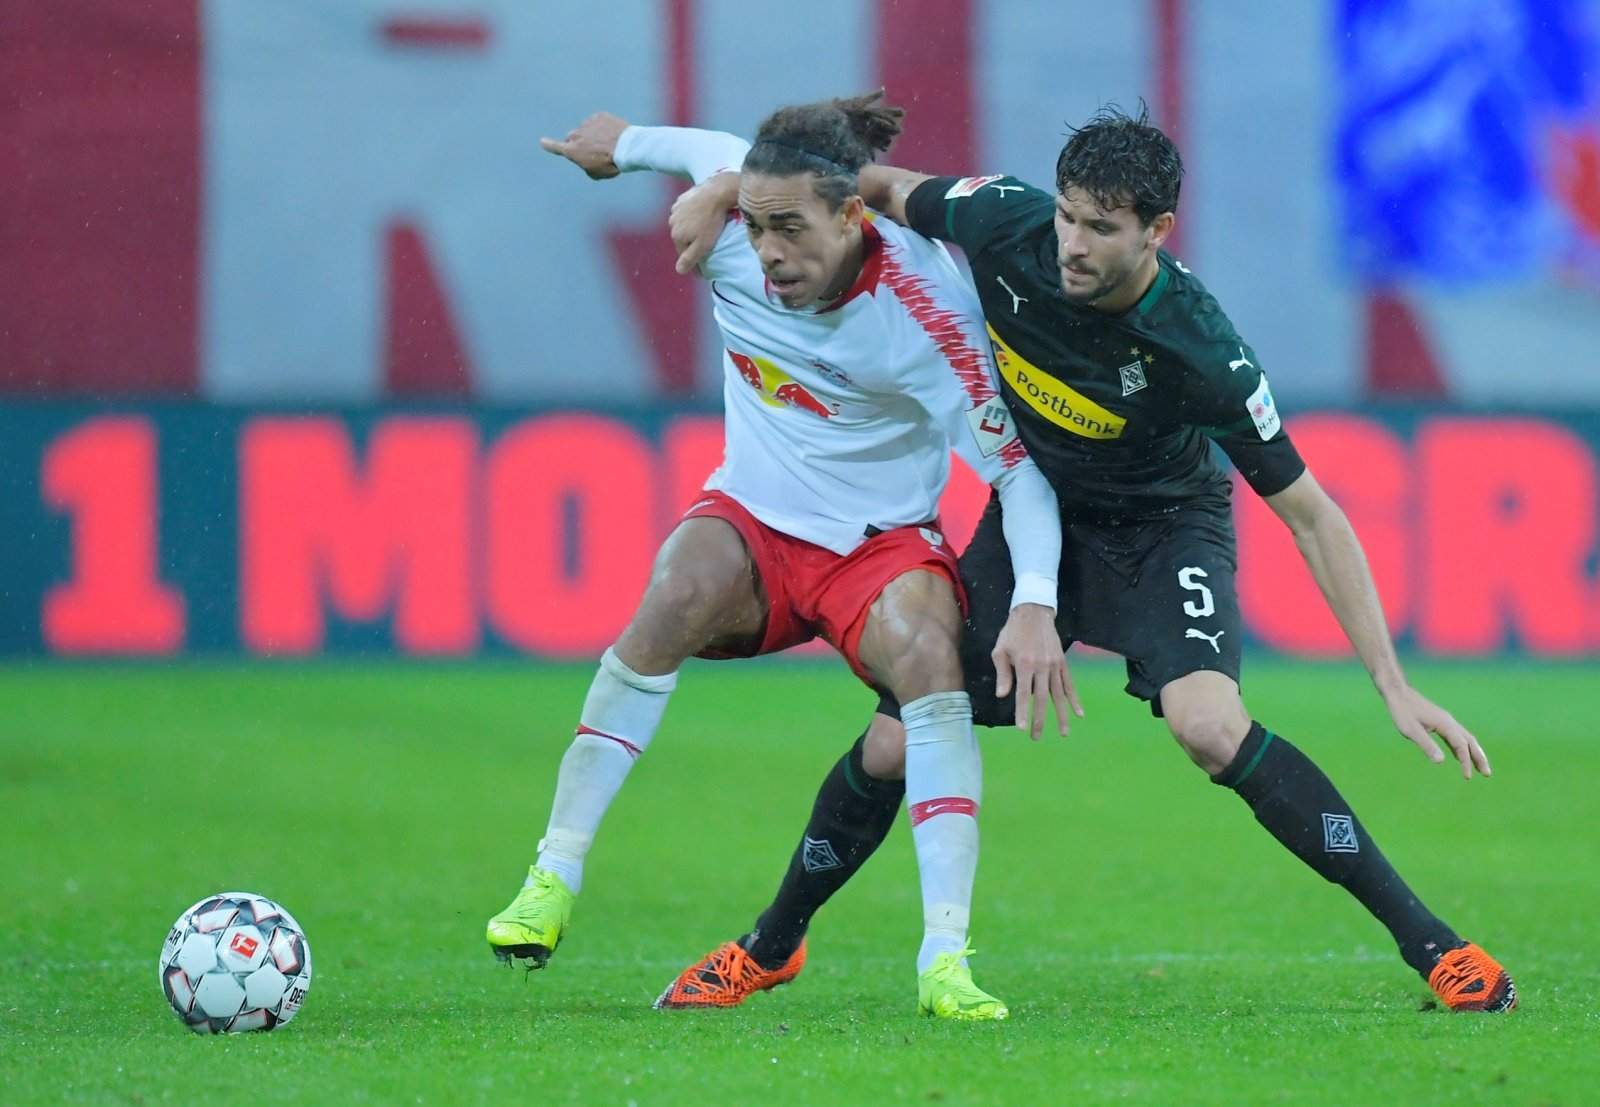 Signing Yussuf Poulsen would be a great move by Everton